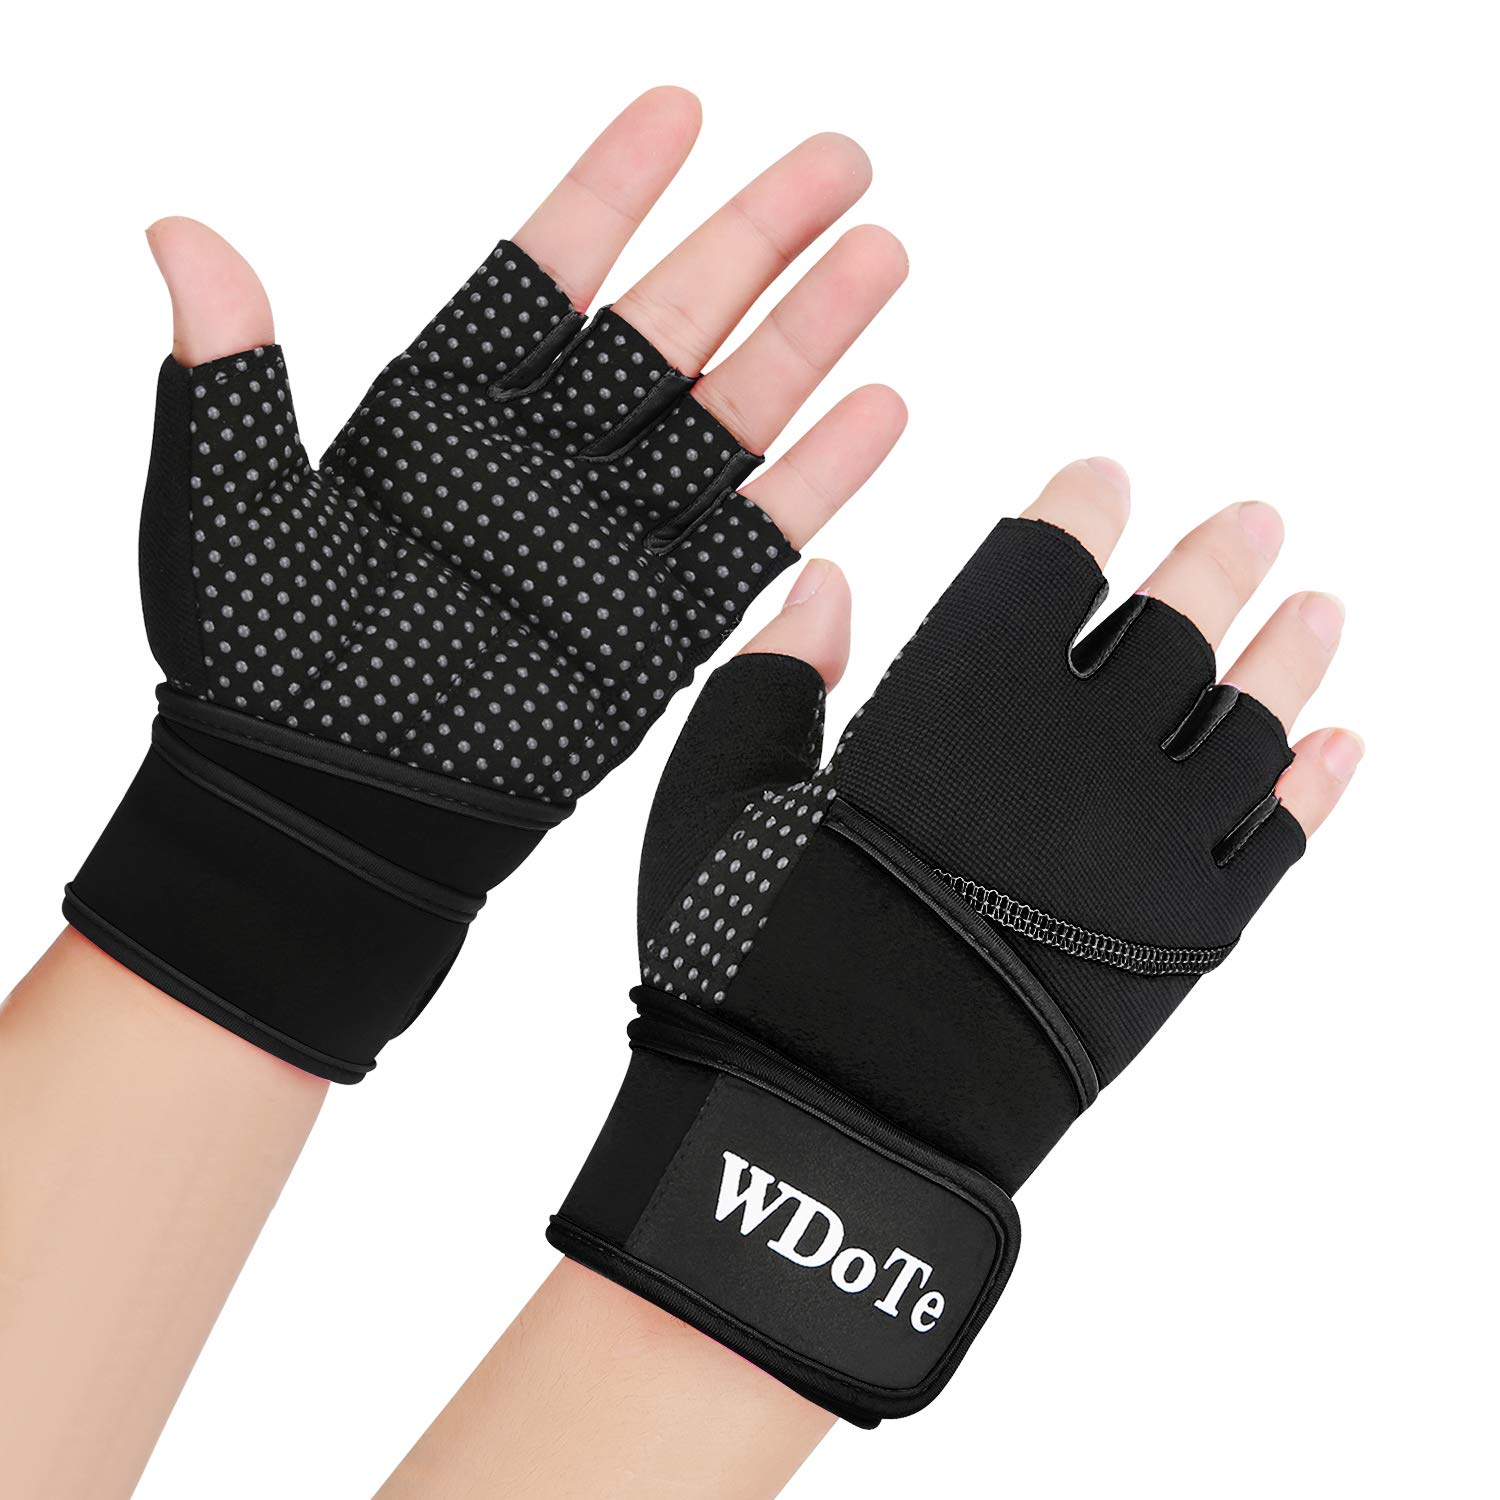 Weight Lifting Gloves, Gym Workout Gloves with 18